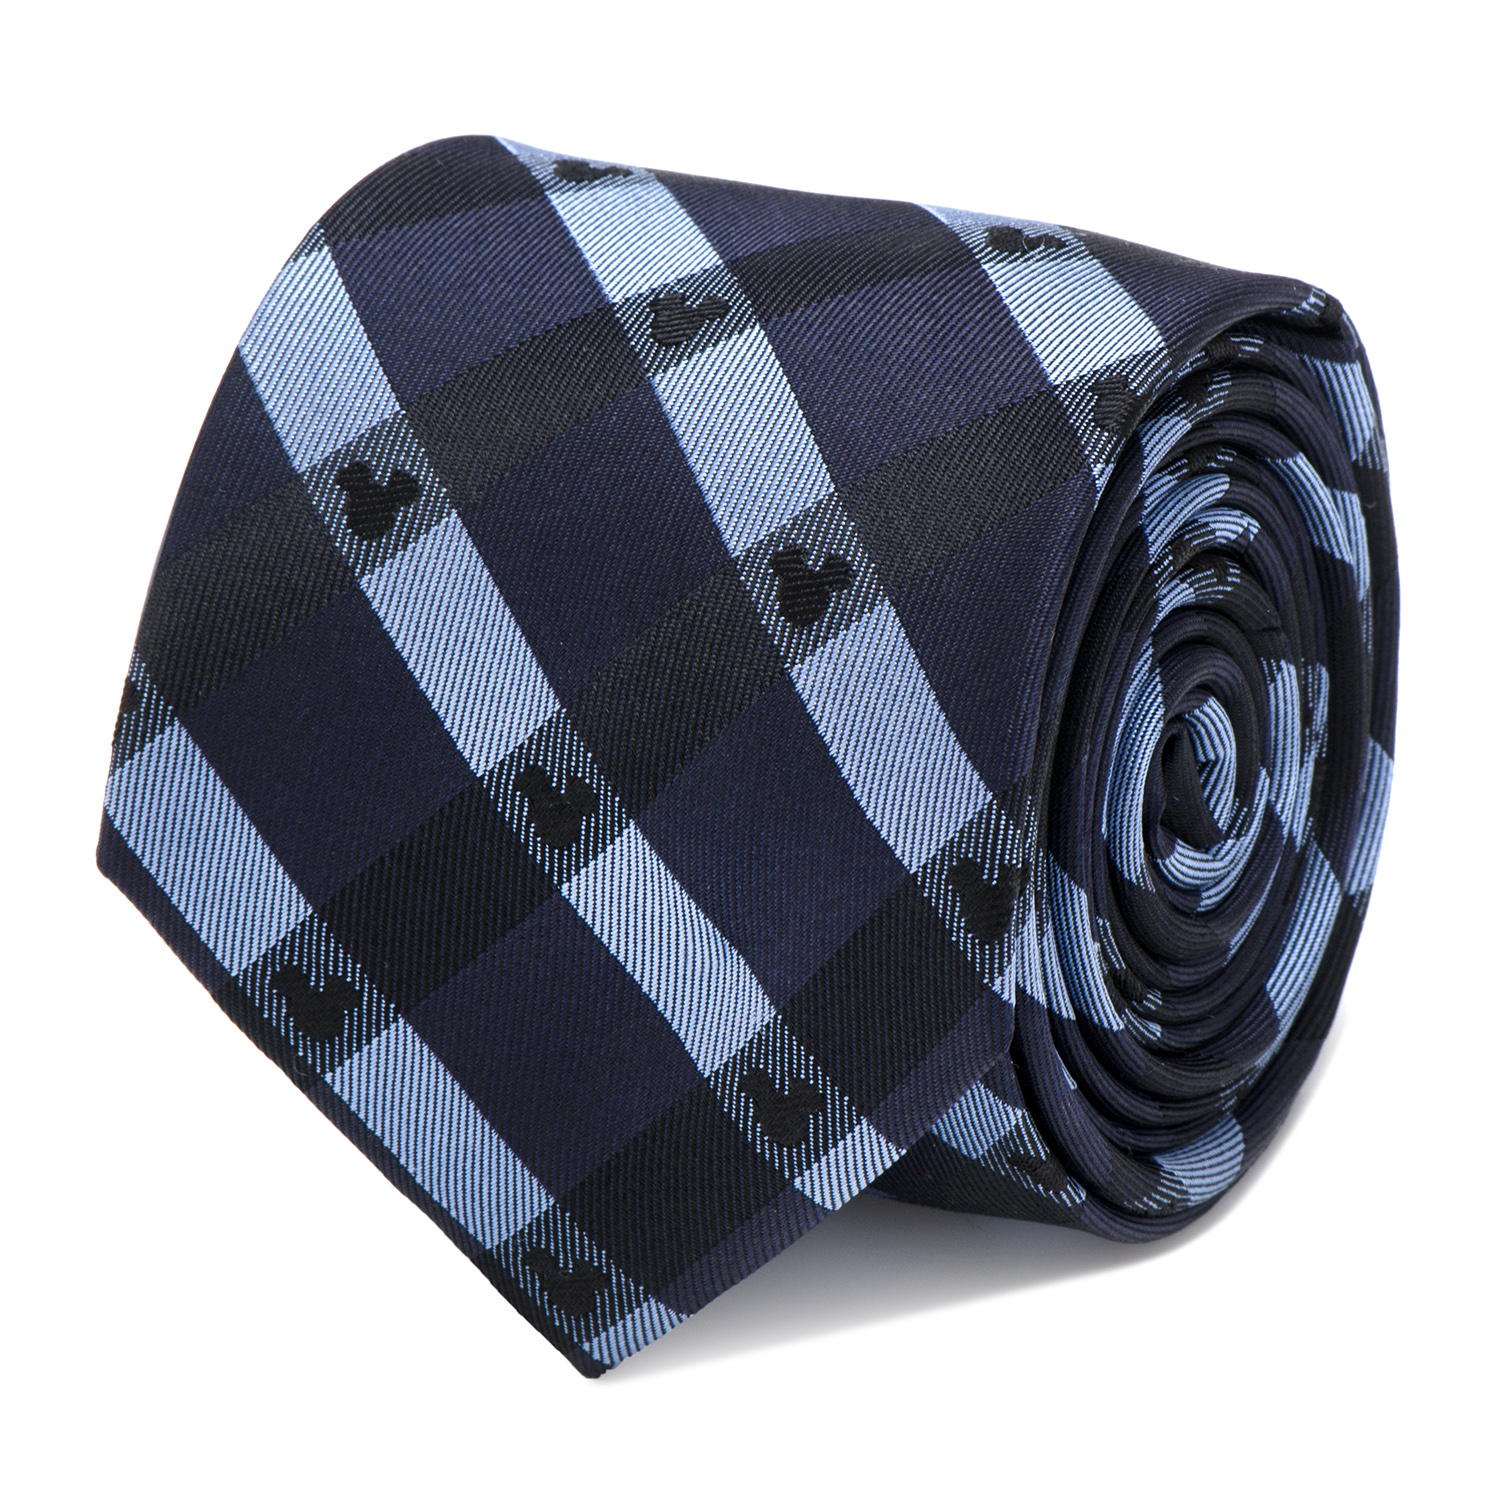 CUFFLINKS INC Mens Mickey Mouse Blue Plaid Tie (Blue) - Modern Jewelry Accessory